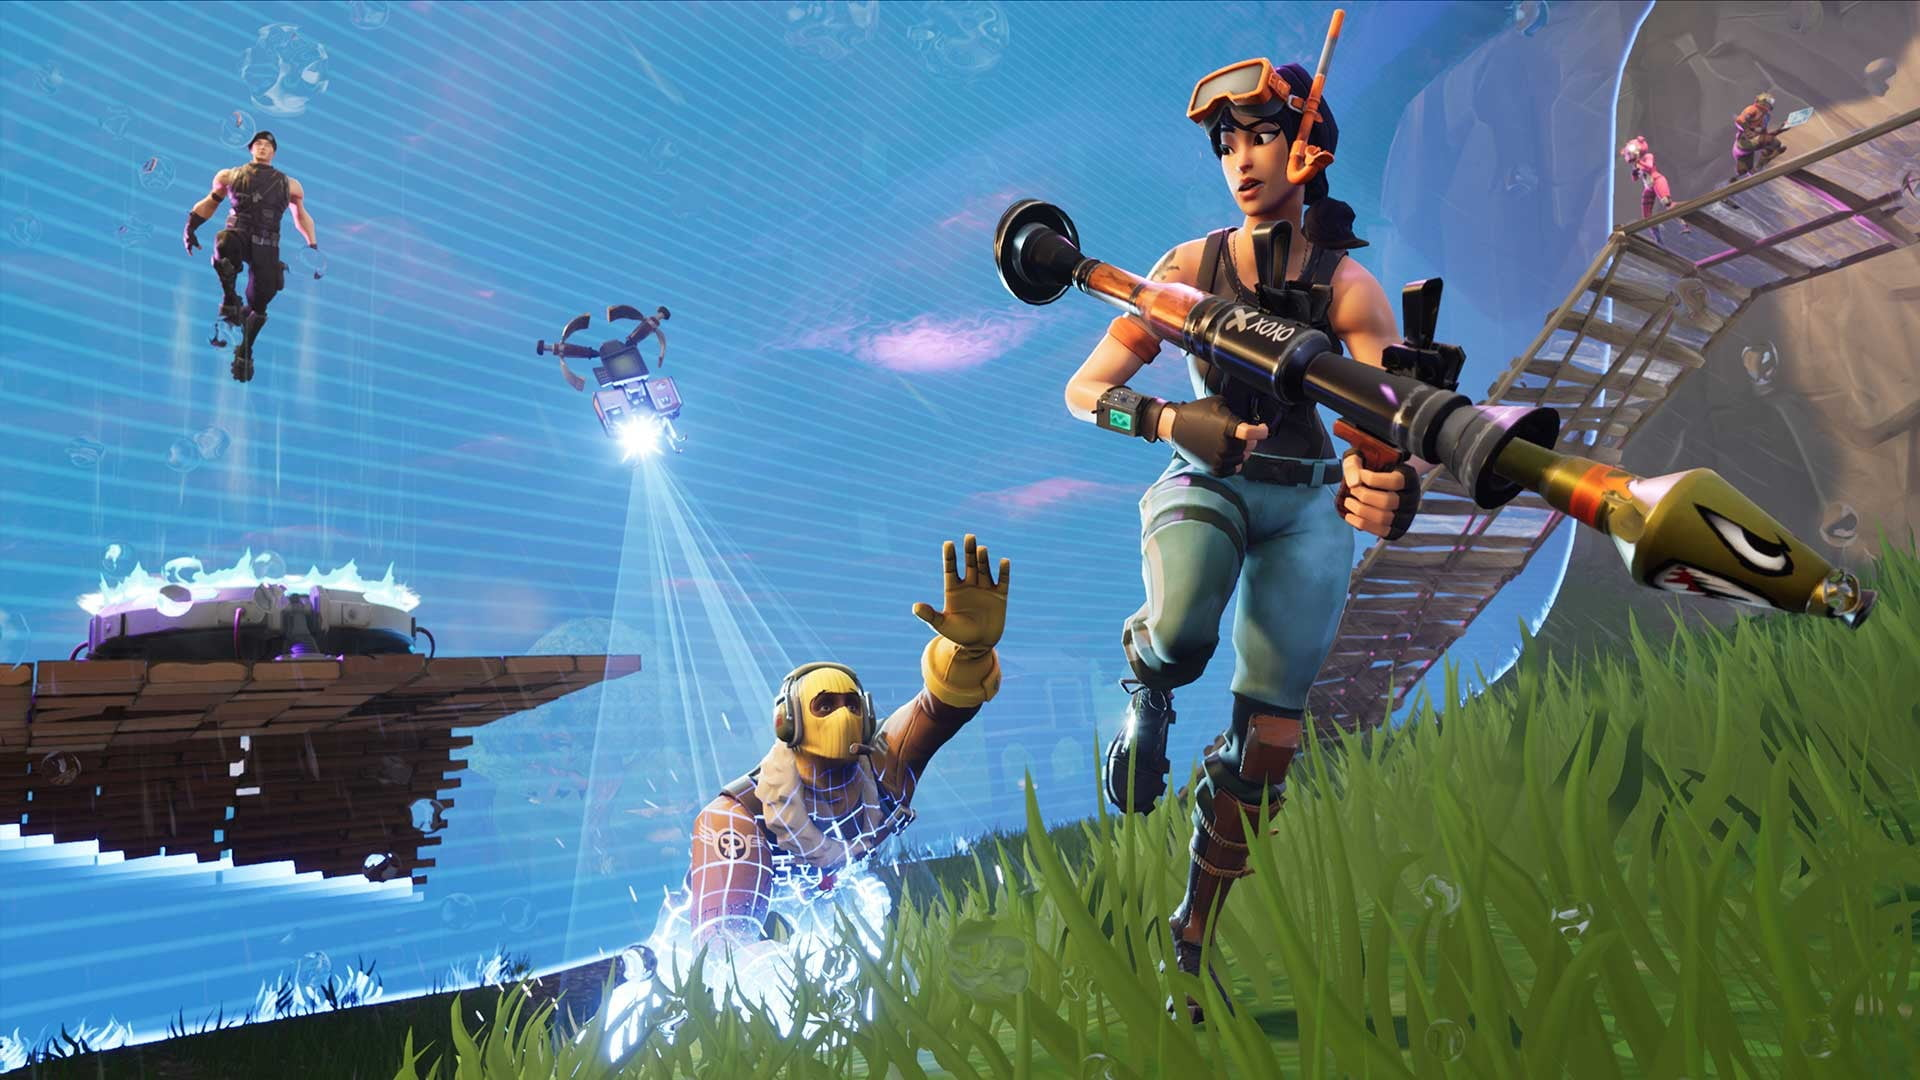 fortnite players who play at 30fps are at a disadvantage